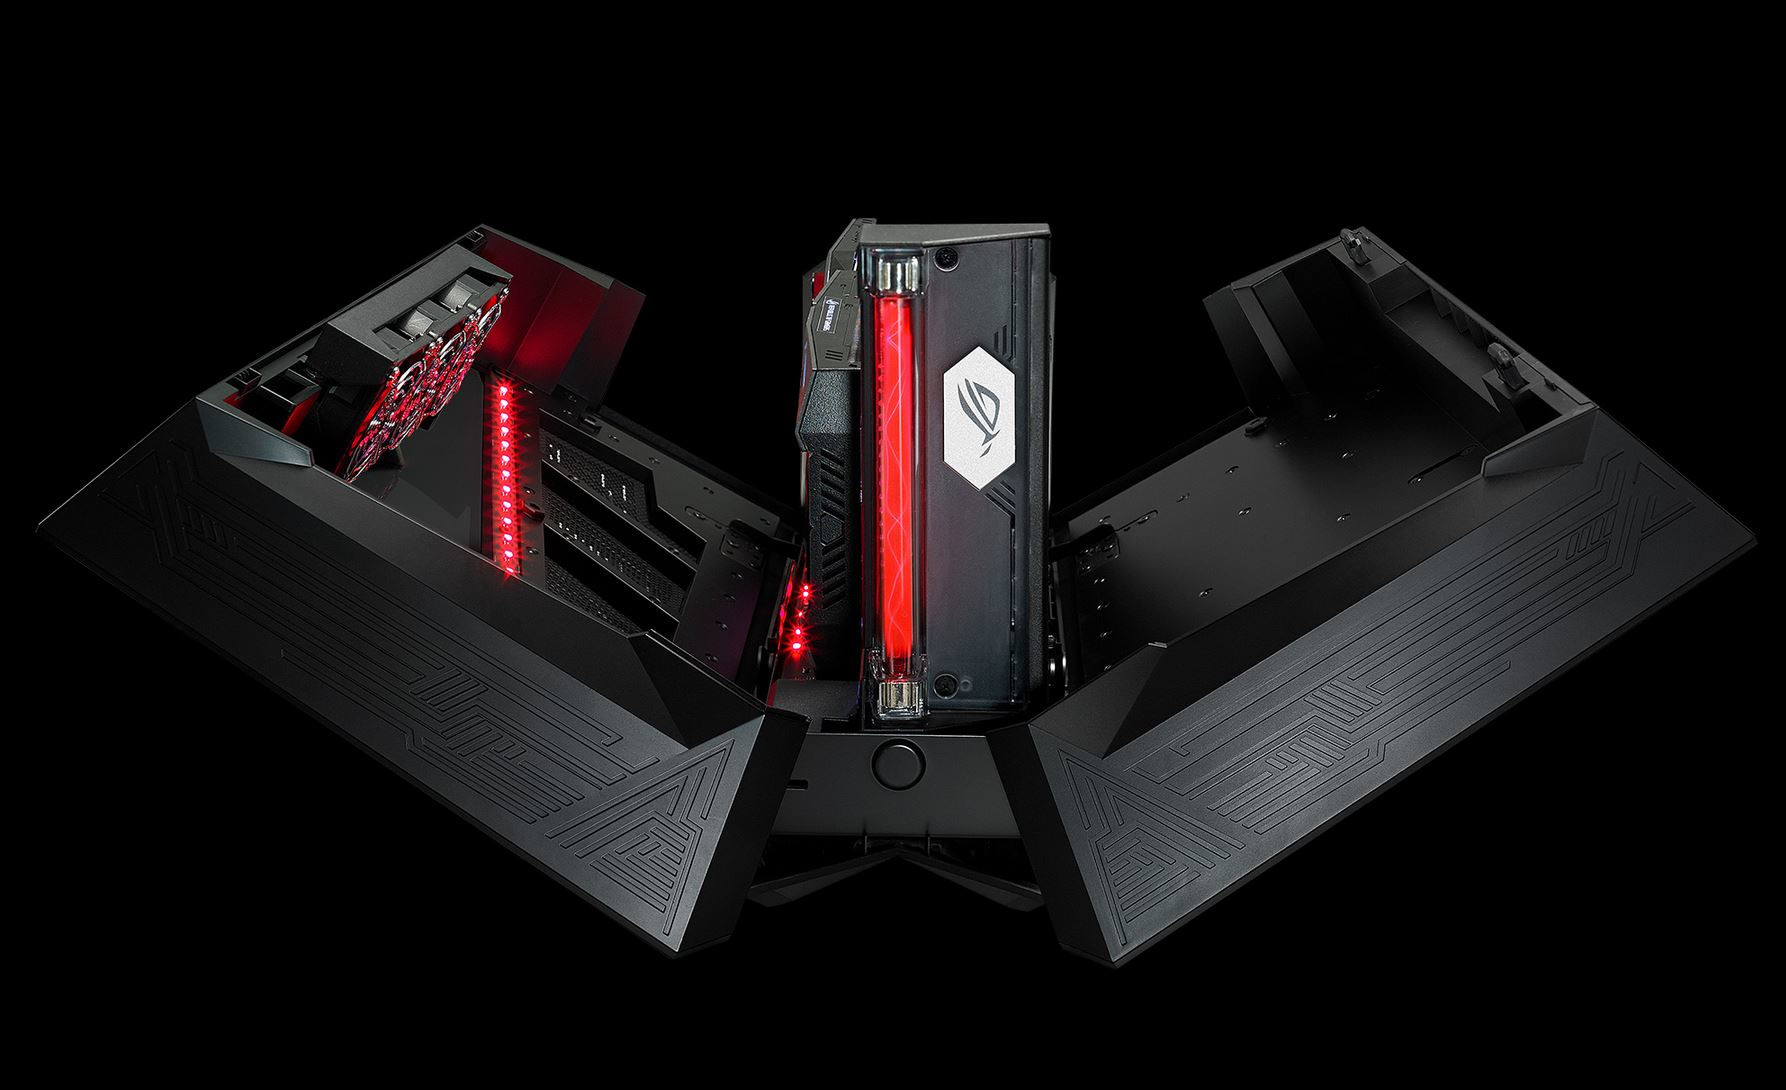 asus-rog-xg-station-2-external-graphics-enclosure-600-01